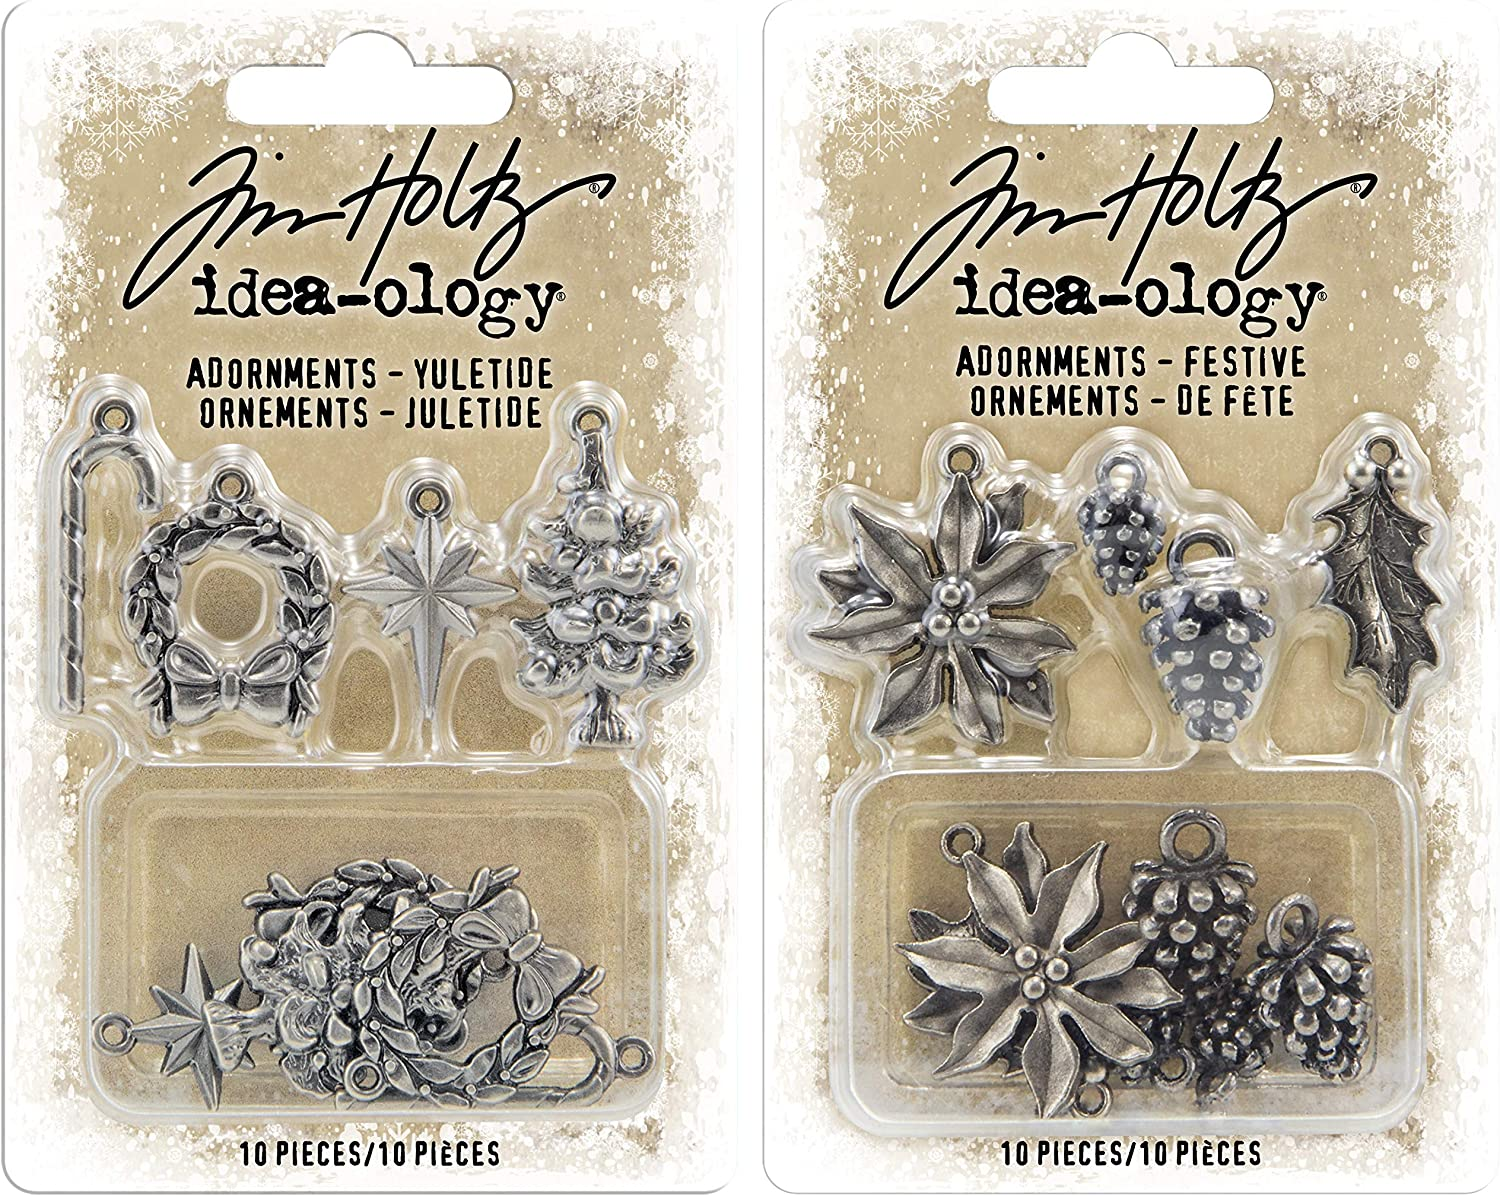 Yuletide and Festive 2 Packages of Seasonal Charms Tim Holtz 2019 Holiday Adornments